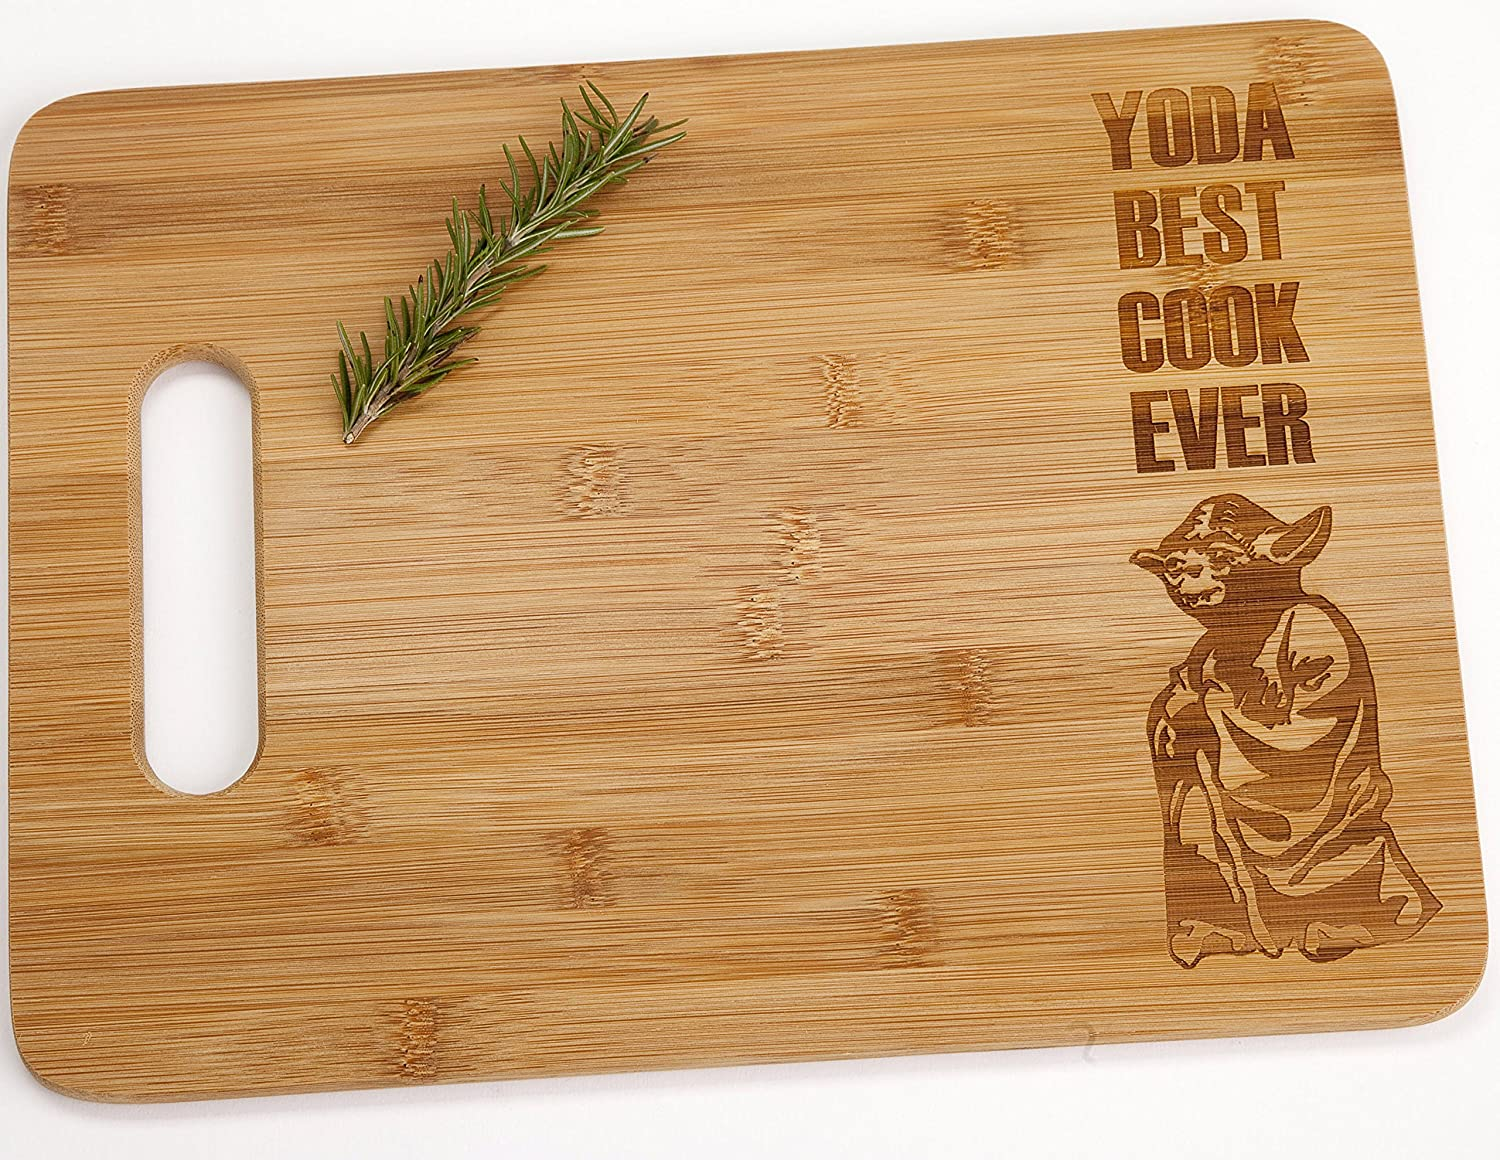 Yoda Best Cook Ever Engraved Bamboo Wood Cutting Board with Handle Star Wars Foodie Gift The Quintessential Hostess QH-CCYBCSSm